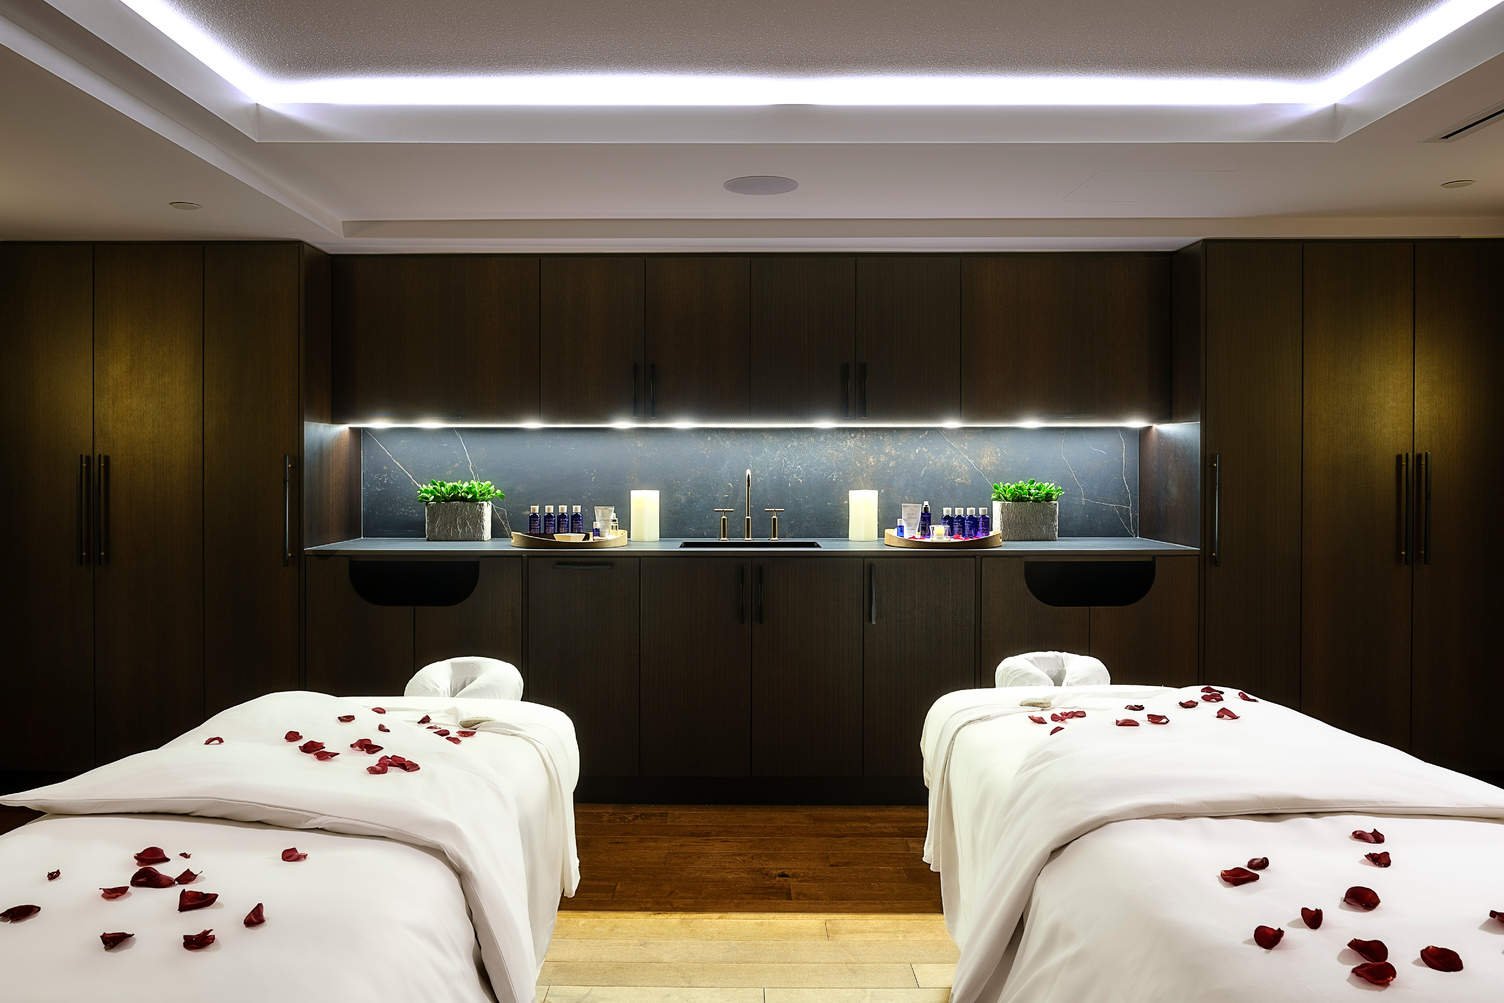 The Willow Stream Spa Deluxe Couples Treatment Room